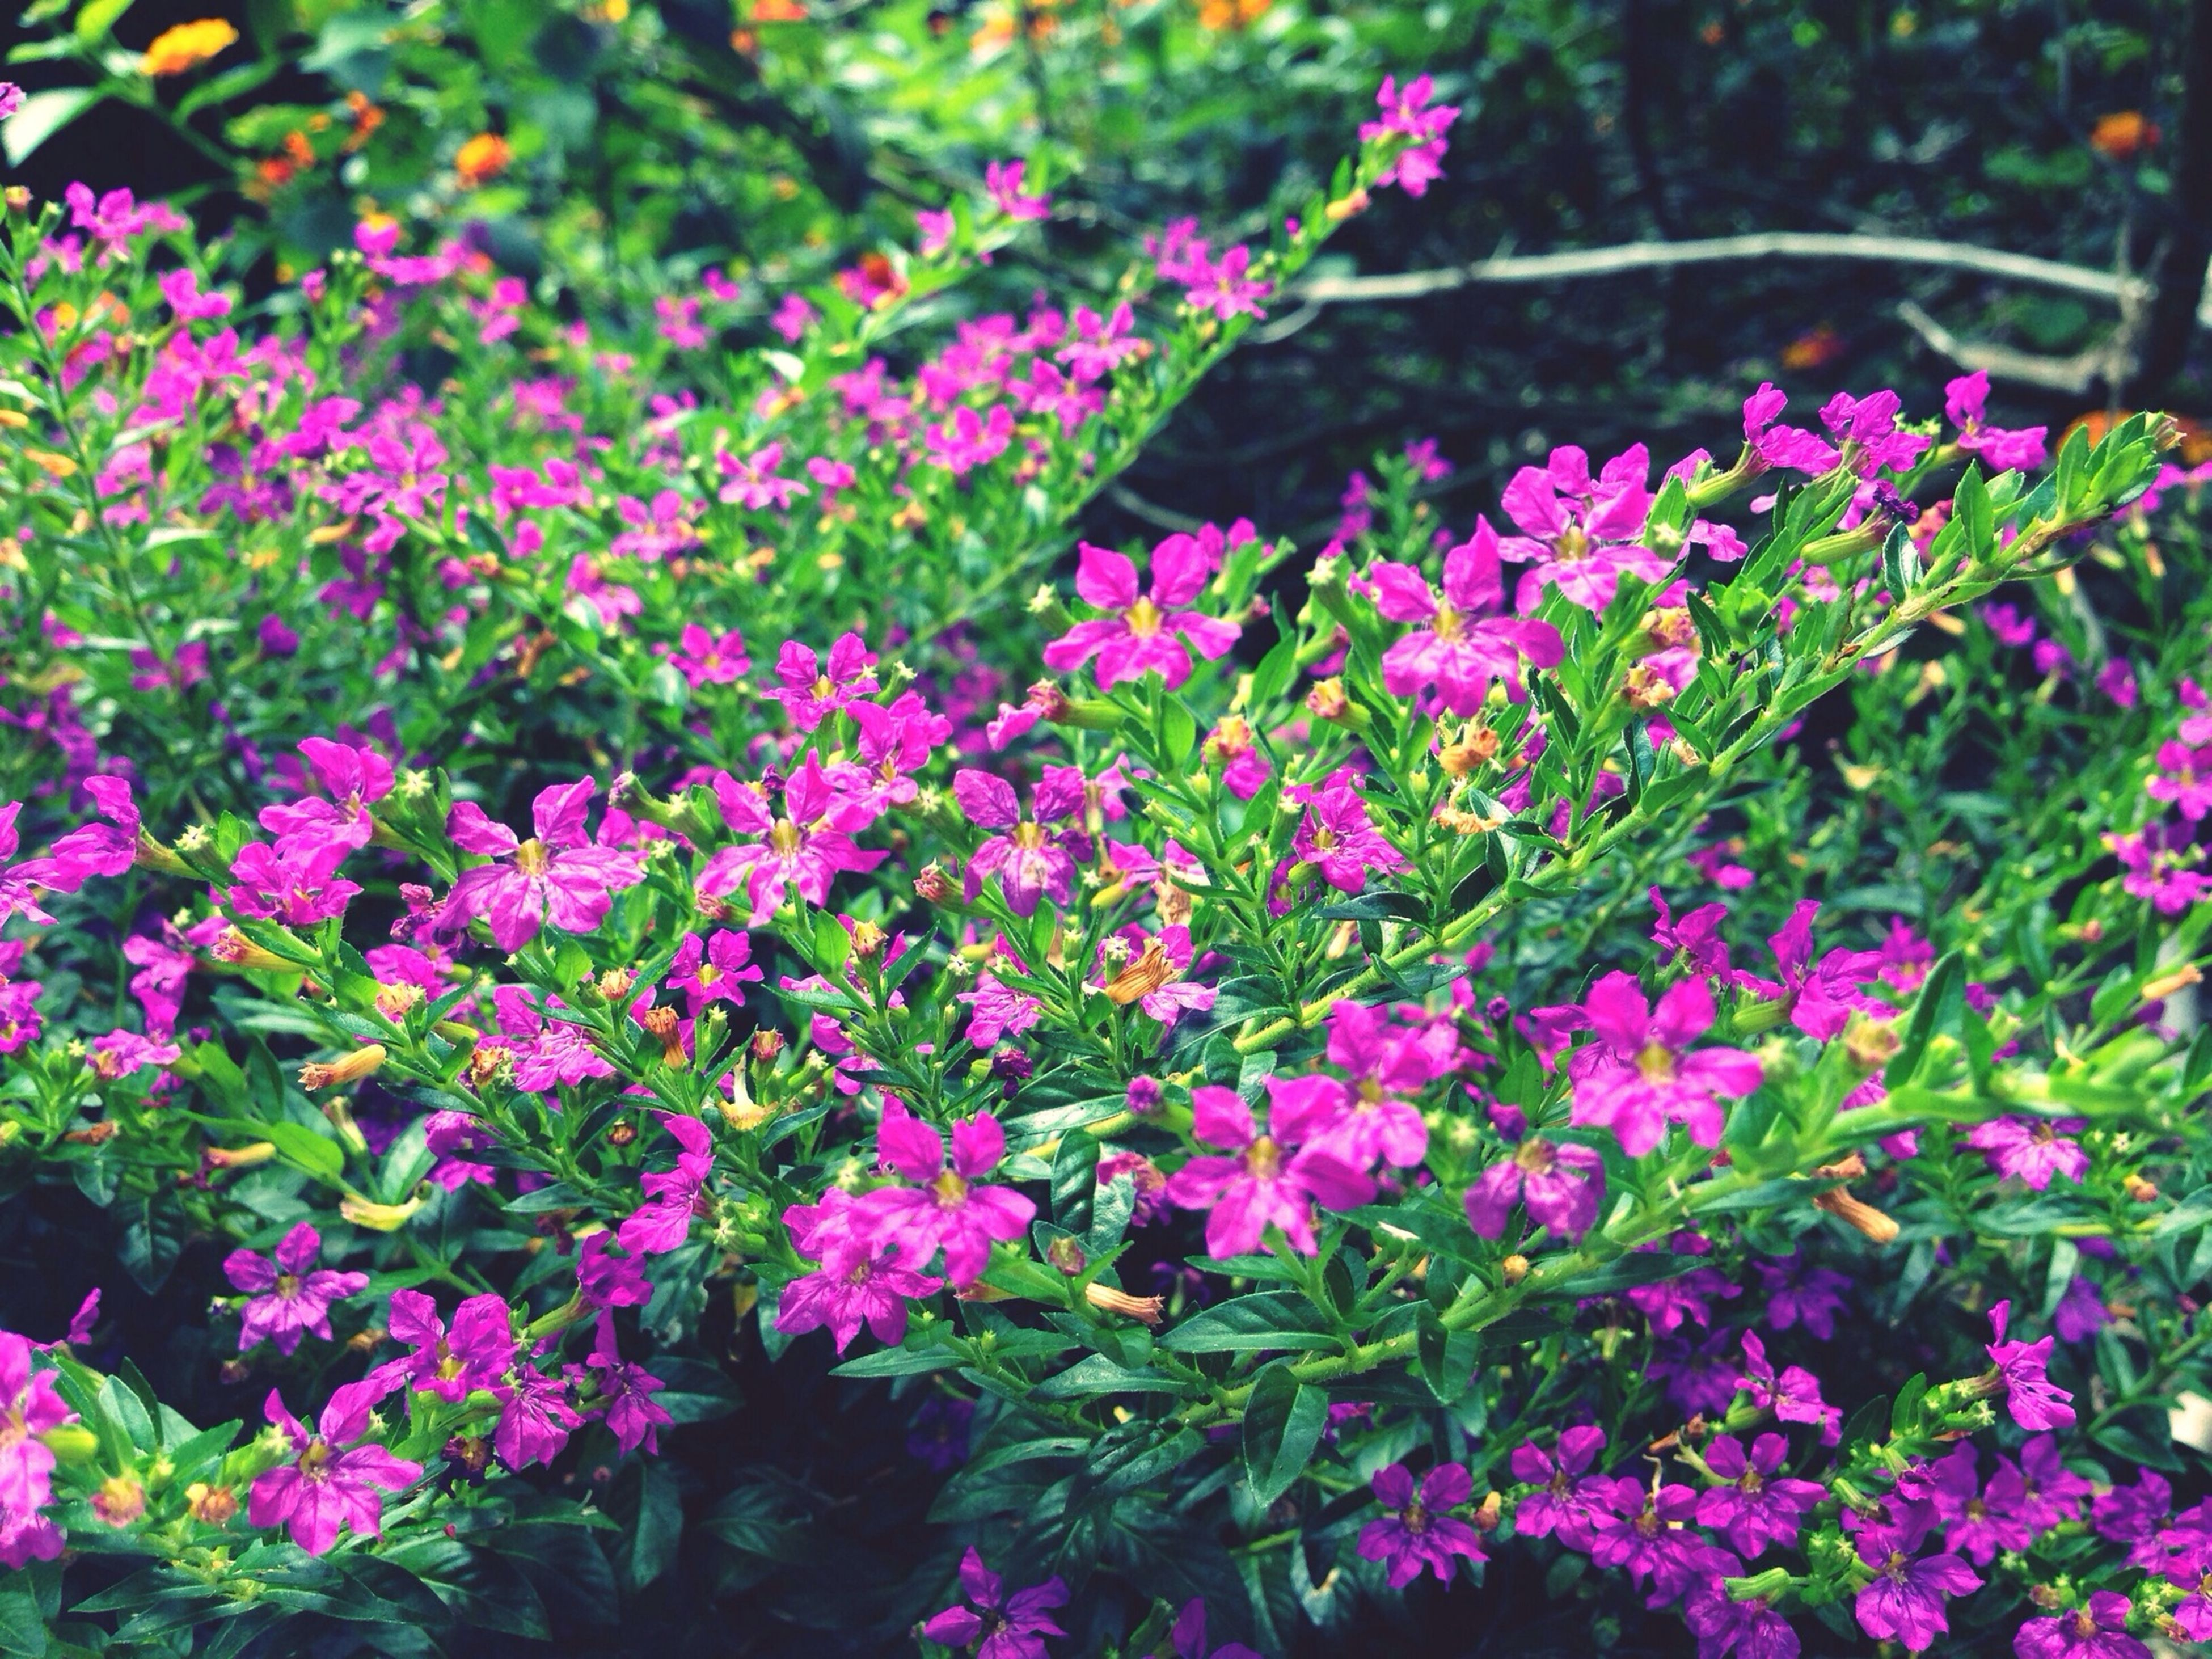 flower, freshness, growth, fragility, beauty in nature, petal, blooming, nature, pink color, plant, purple, in bloom, park - man made space, blossom, abundance, springtime, flower head, botany, outdoors, day